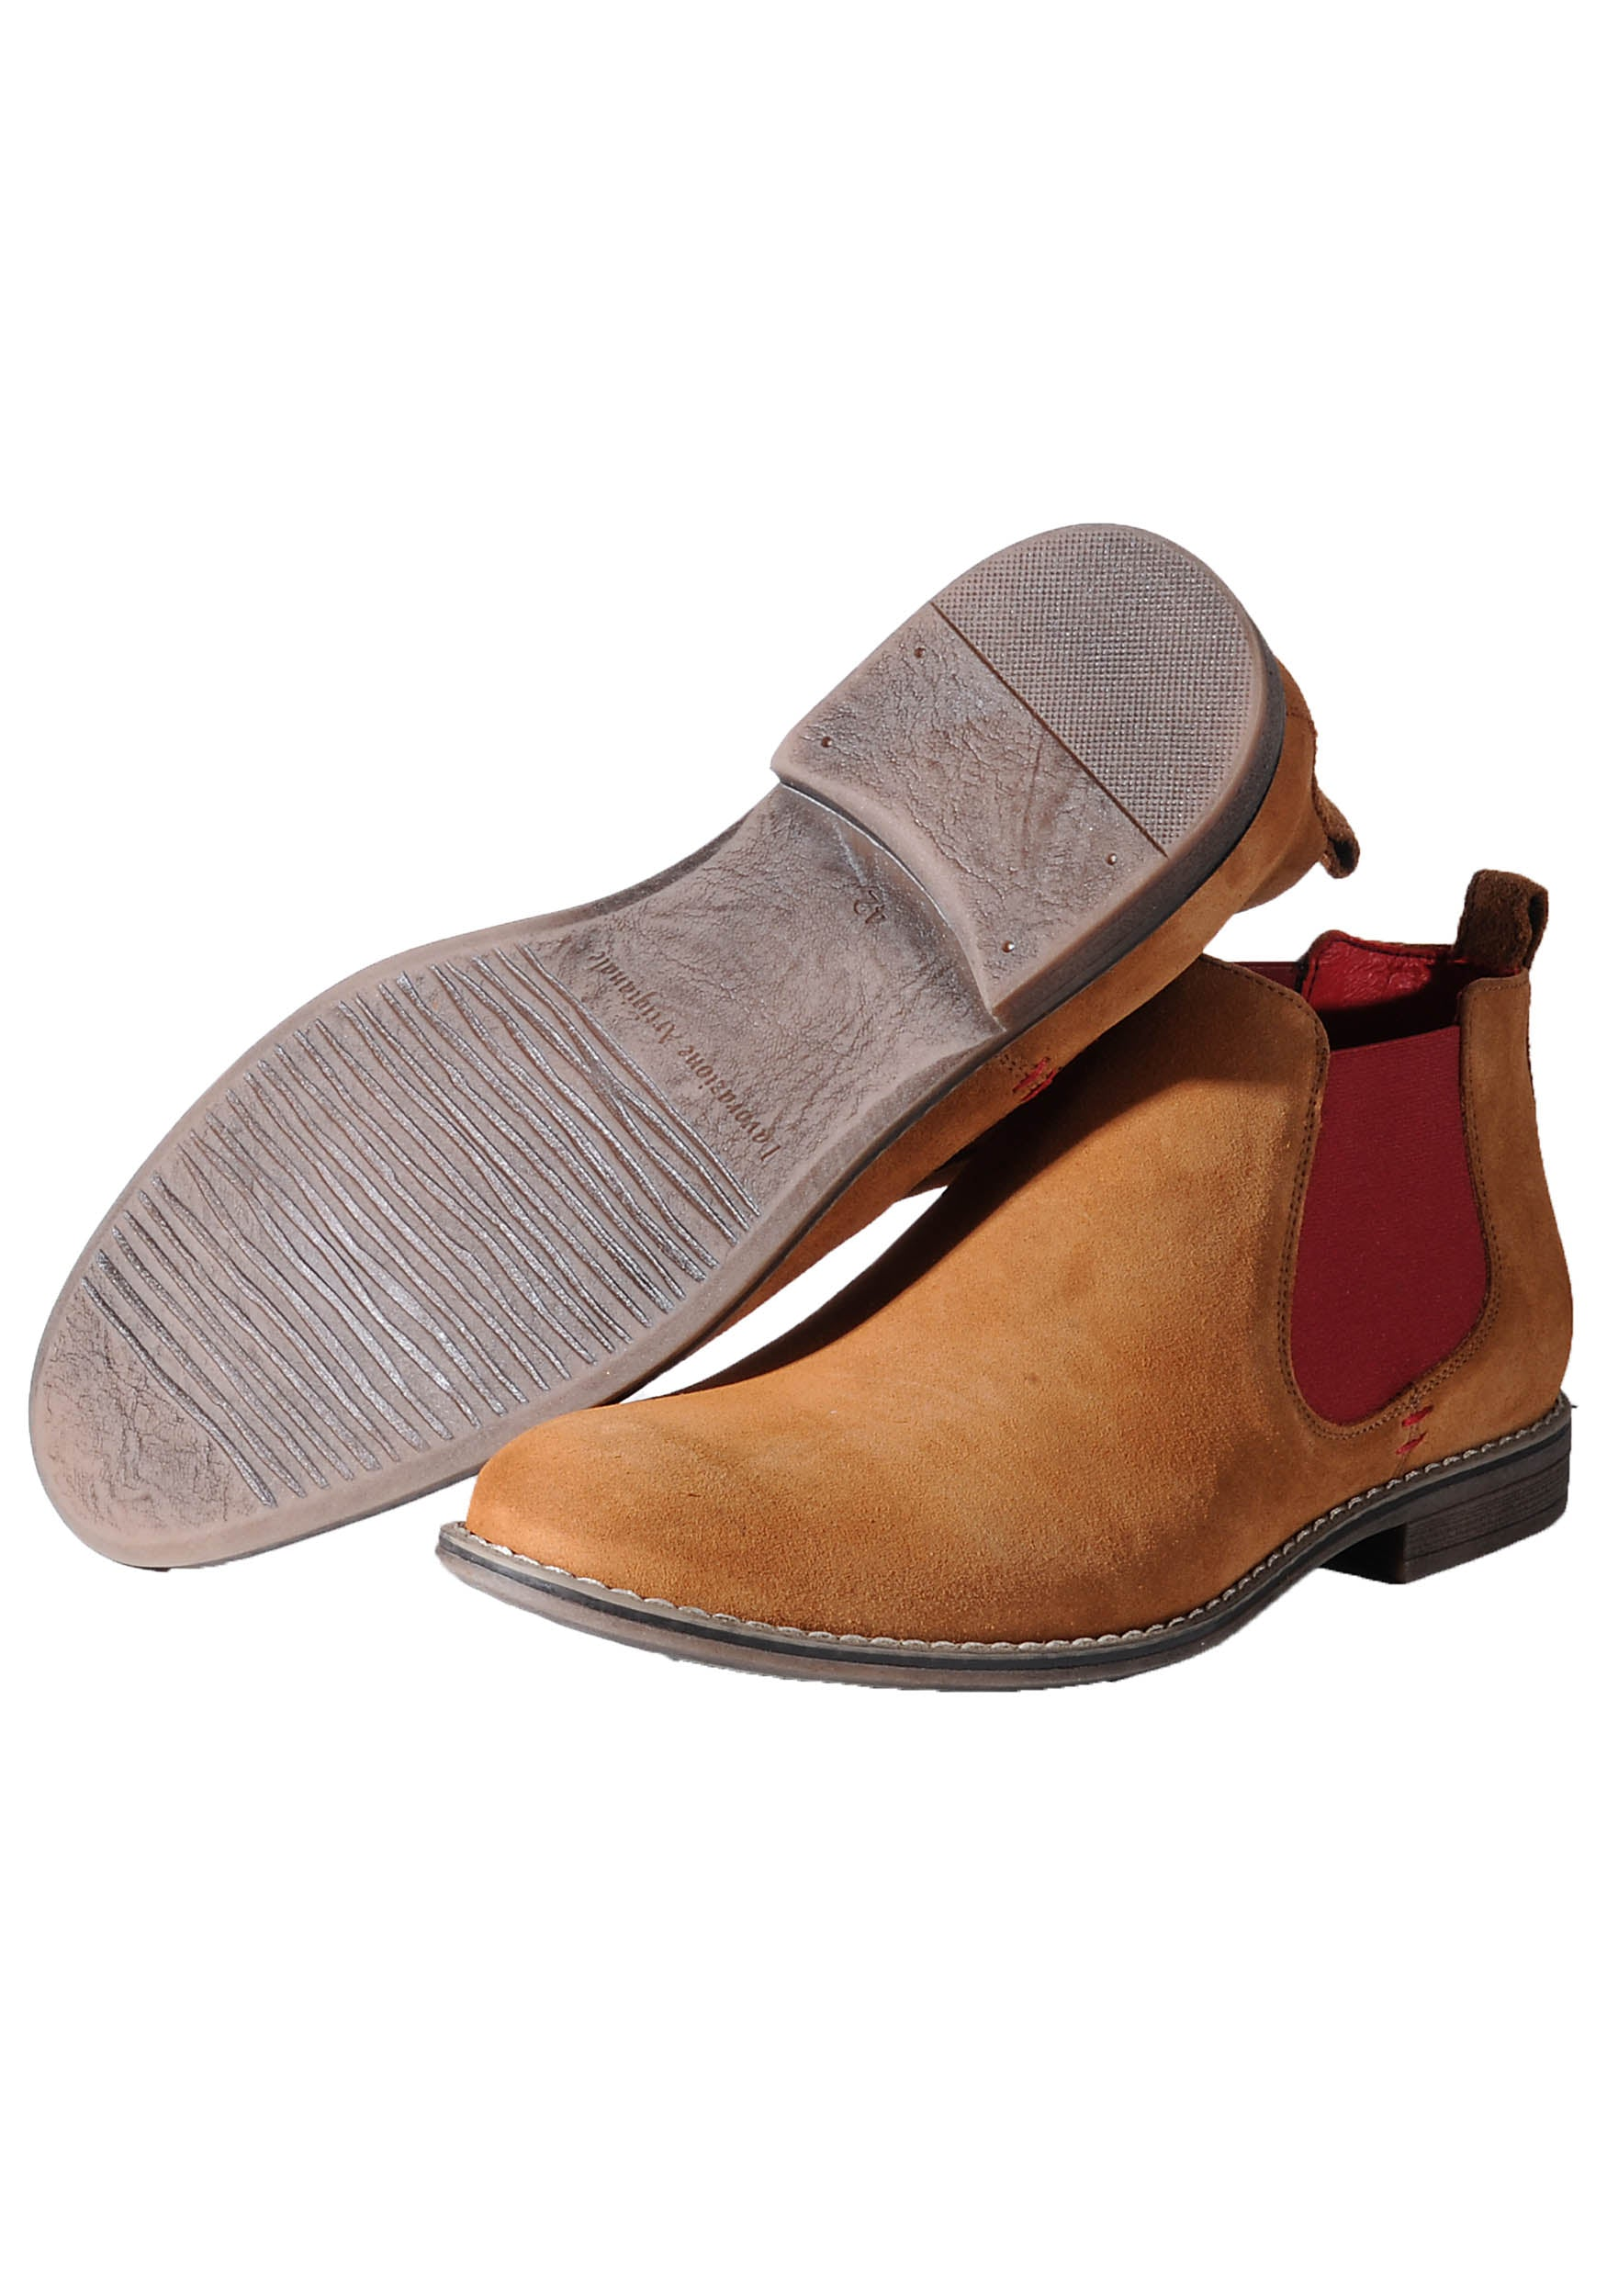 Lacuzzo Tan Chelsea Boot Lacuzzo - 7clothing Cardiff